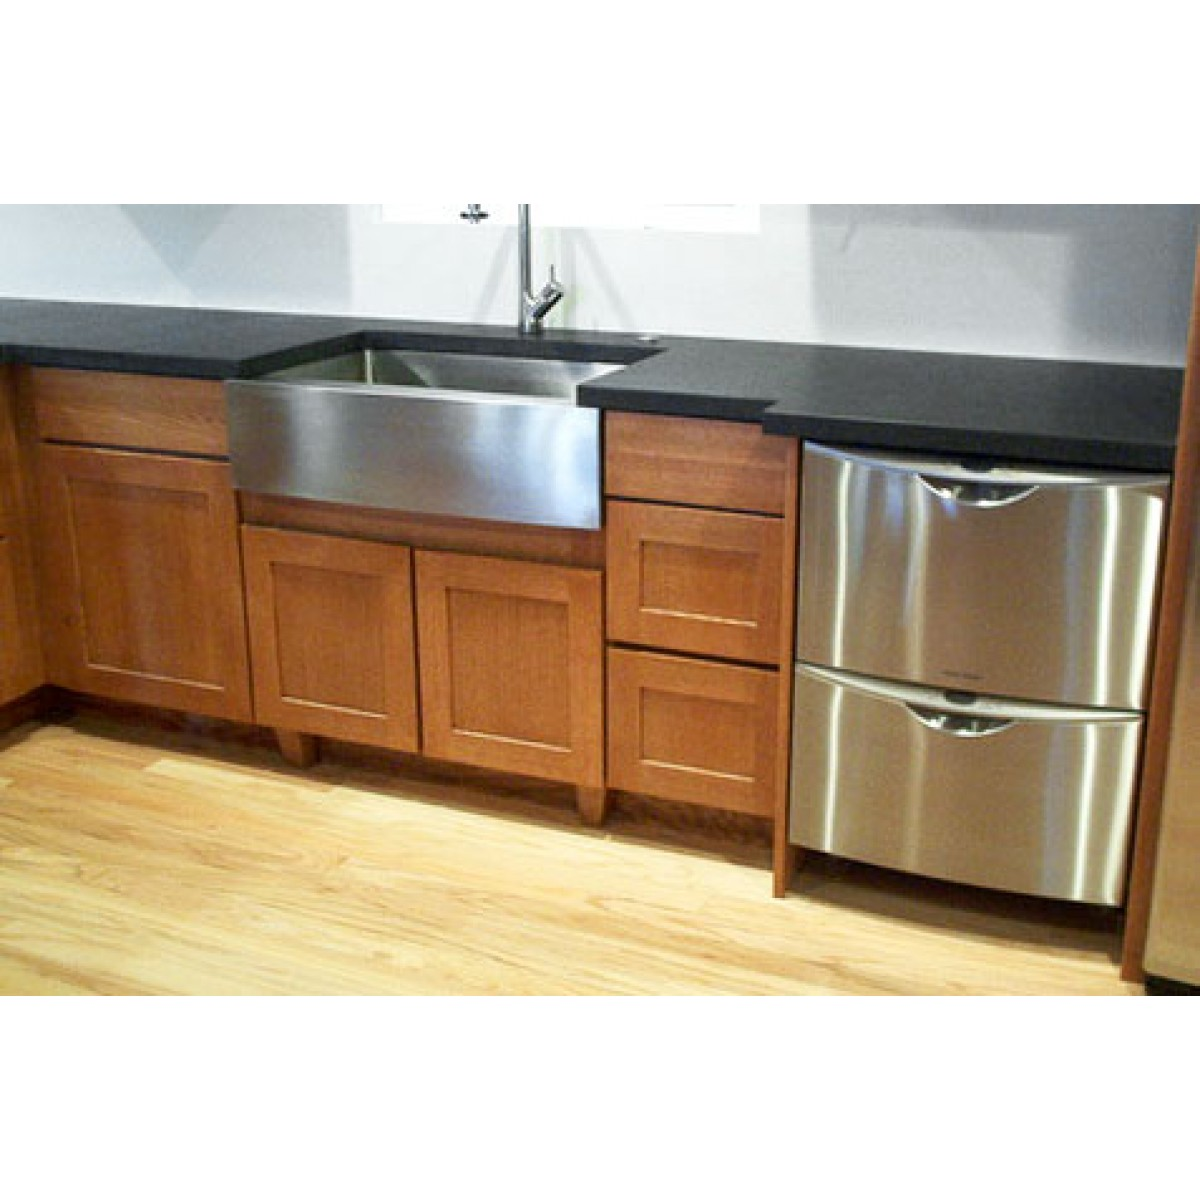 36 Inch Stainless Steel Single Bowl Flat Front Farmhouse Apron Kitchen Sink